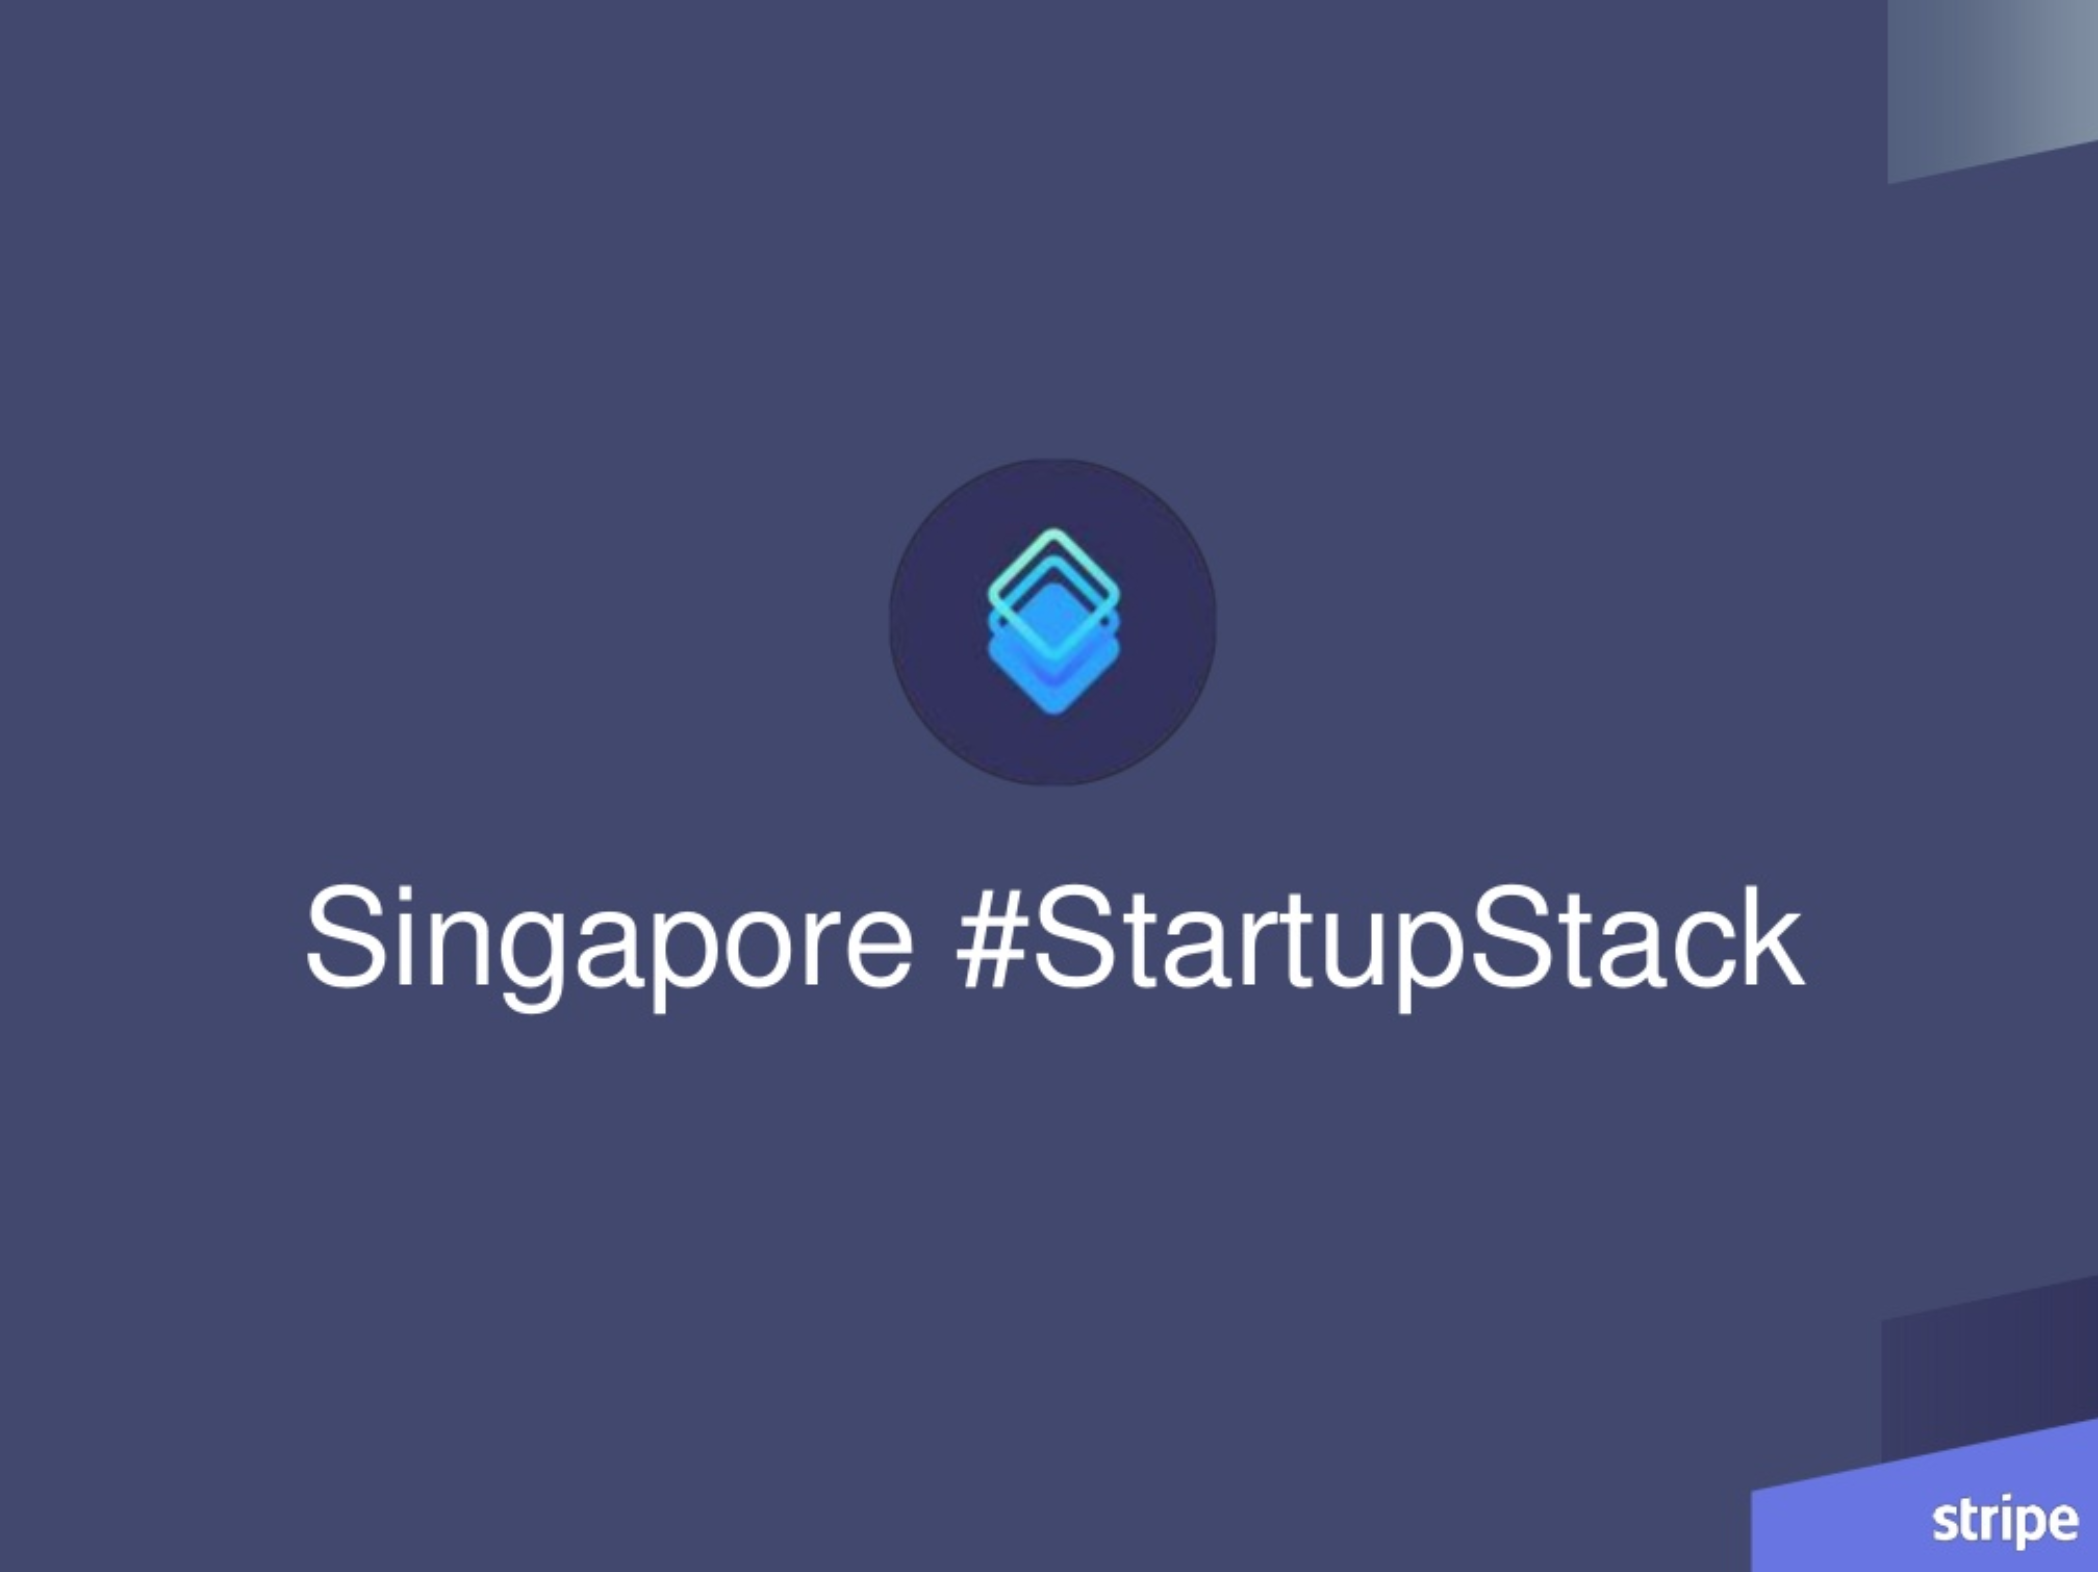 Singapore #StartupStack: We're proud to be powering the startup community!